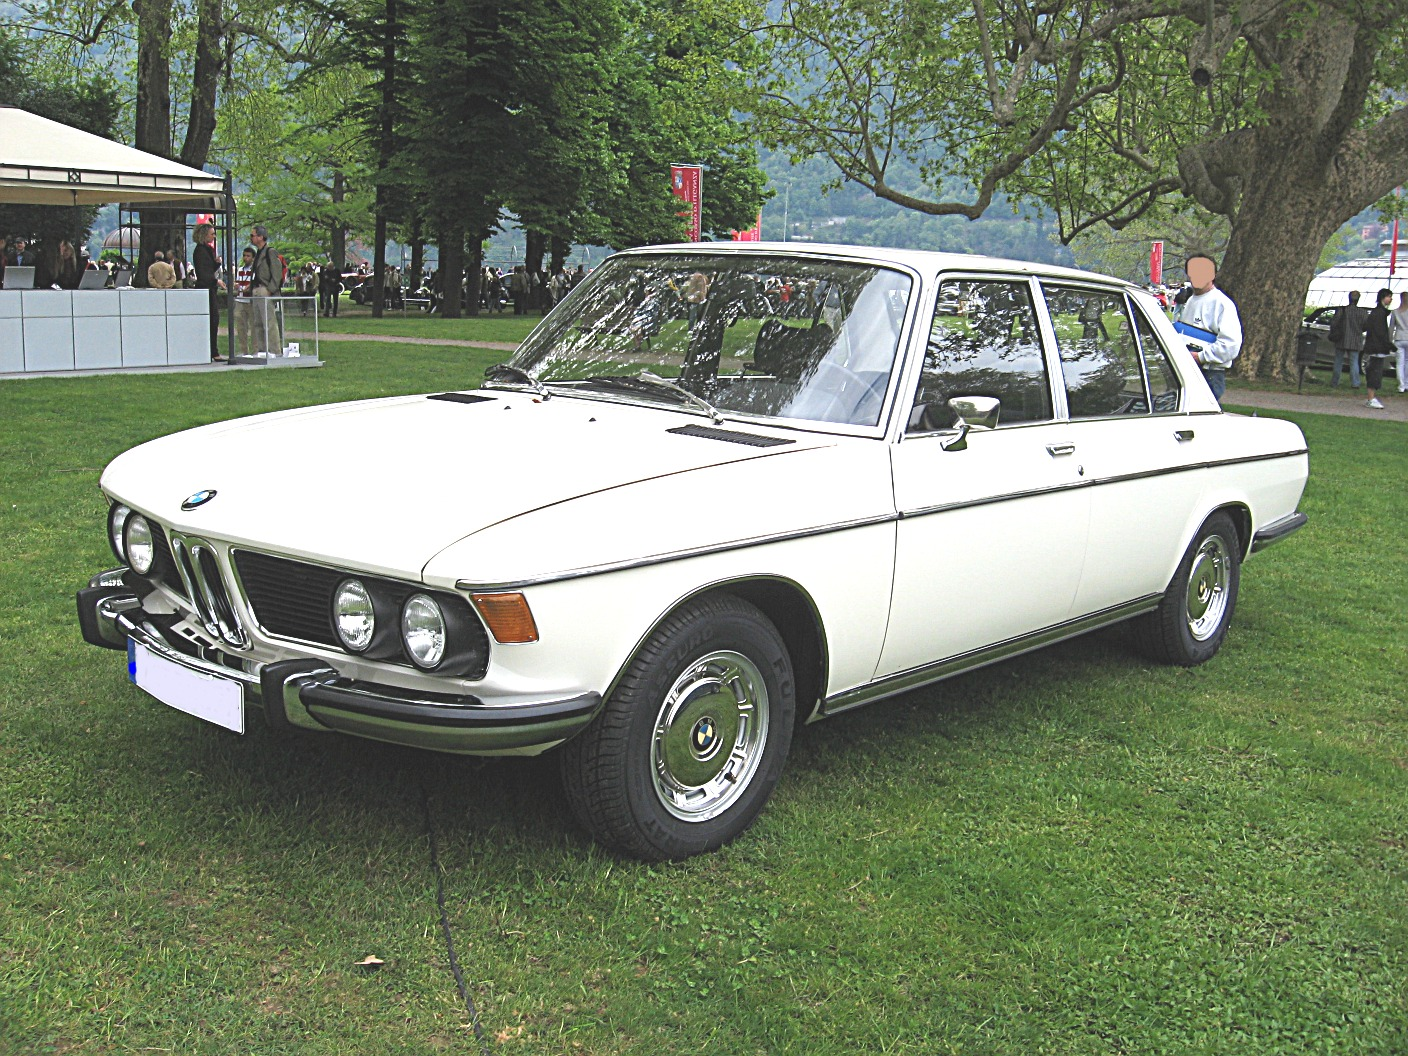 FileBMW SE FrontviewJPG Wikimedia Commons - 3 0 bmw